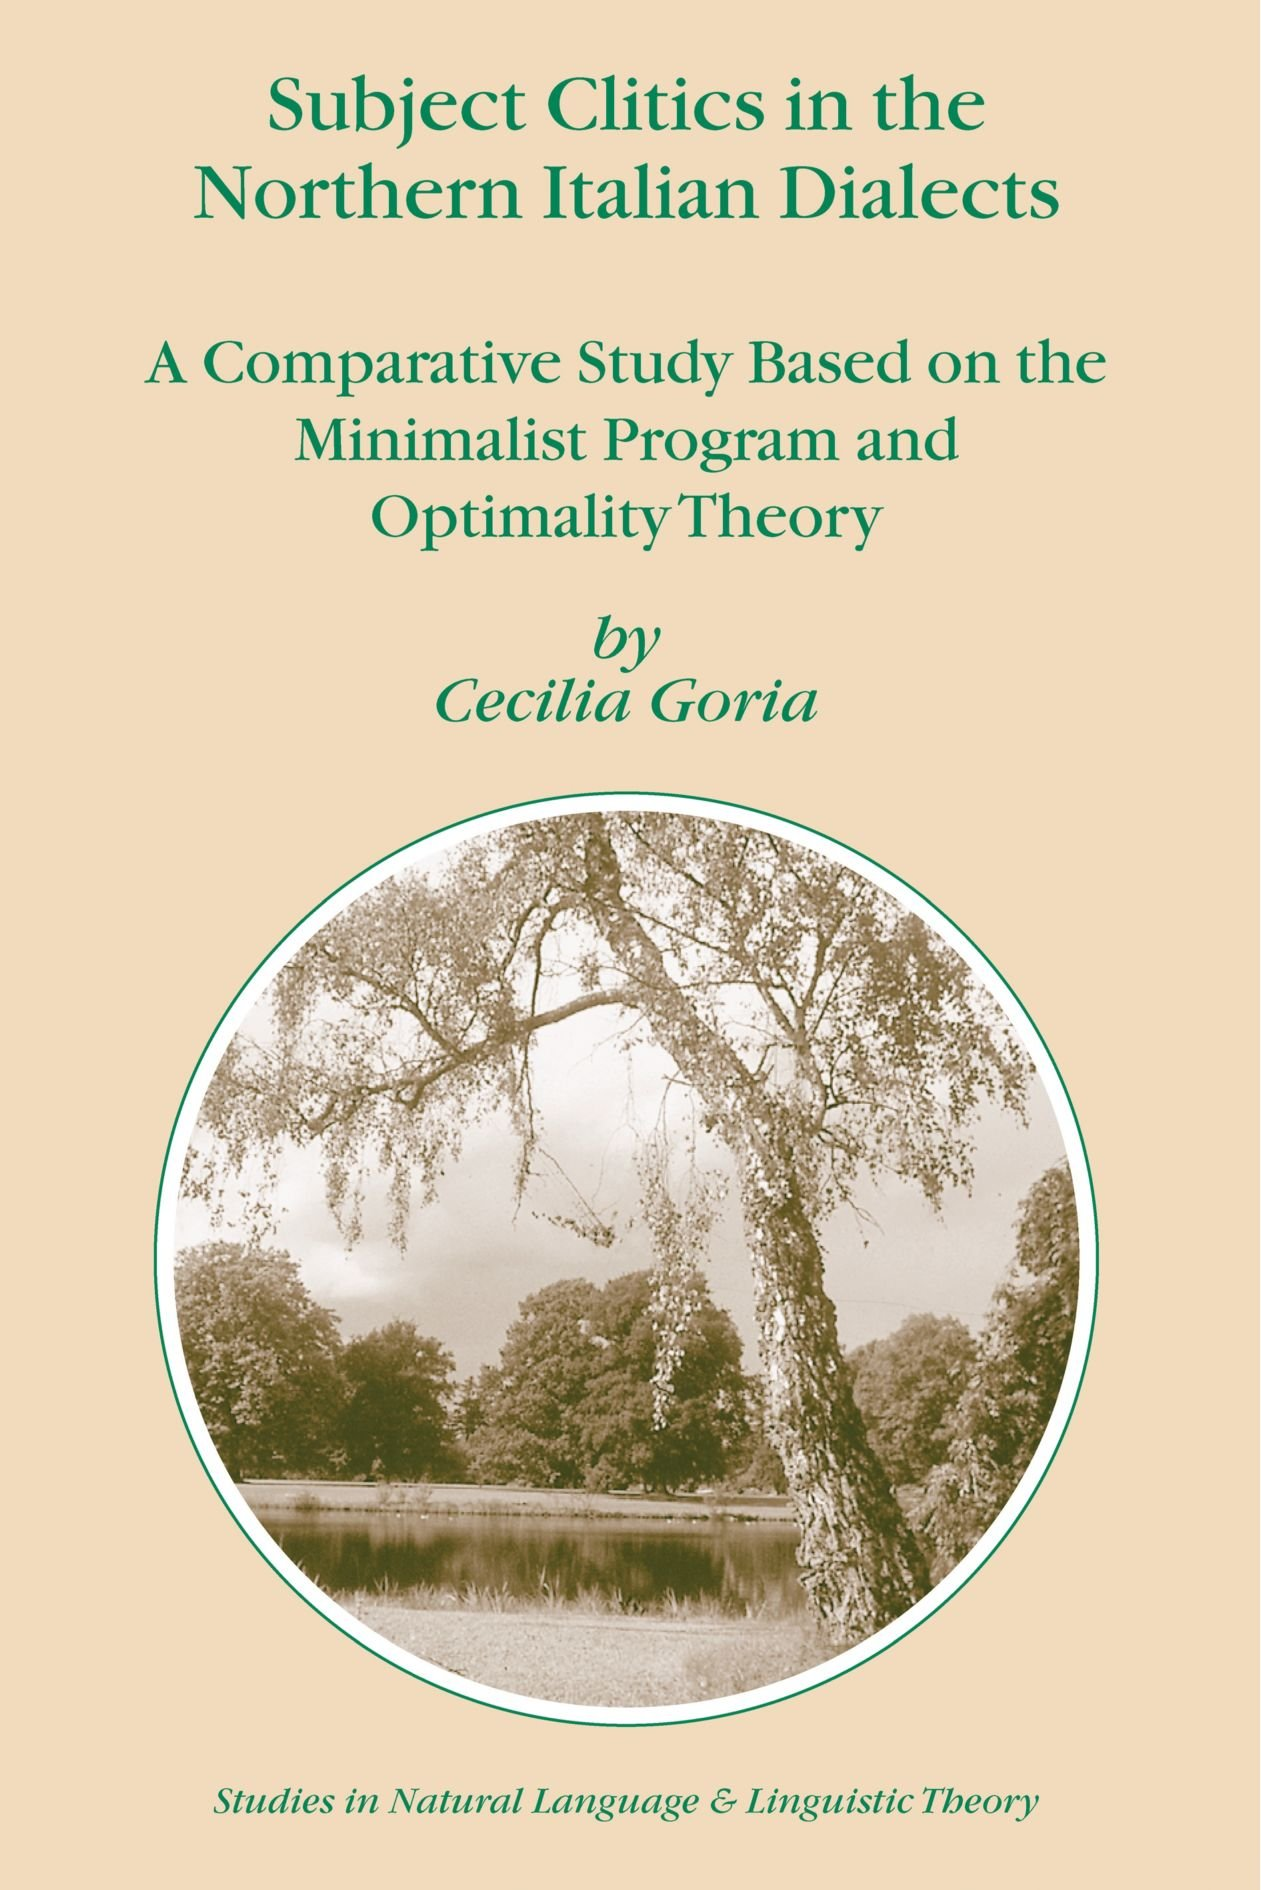 Subject Clitics in the Northern Italian Dialects: A Comparative Study Based on the Minimalist Program and Optimality Theory (Studies in Natural Language and Linguistic Theory) by Springer